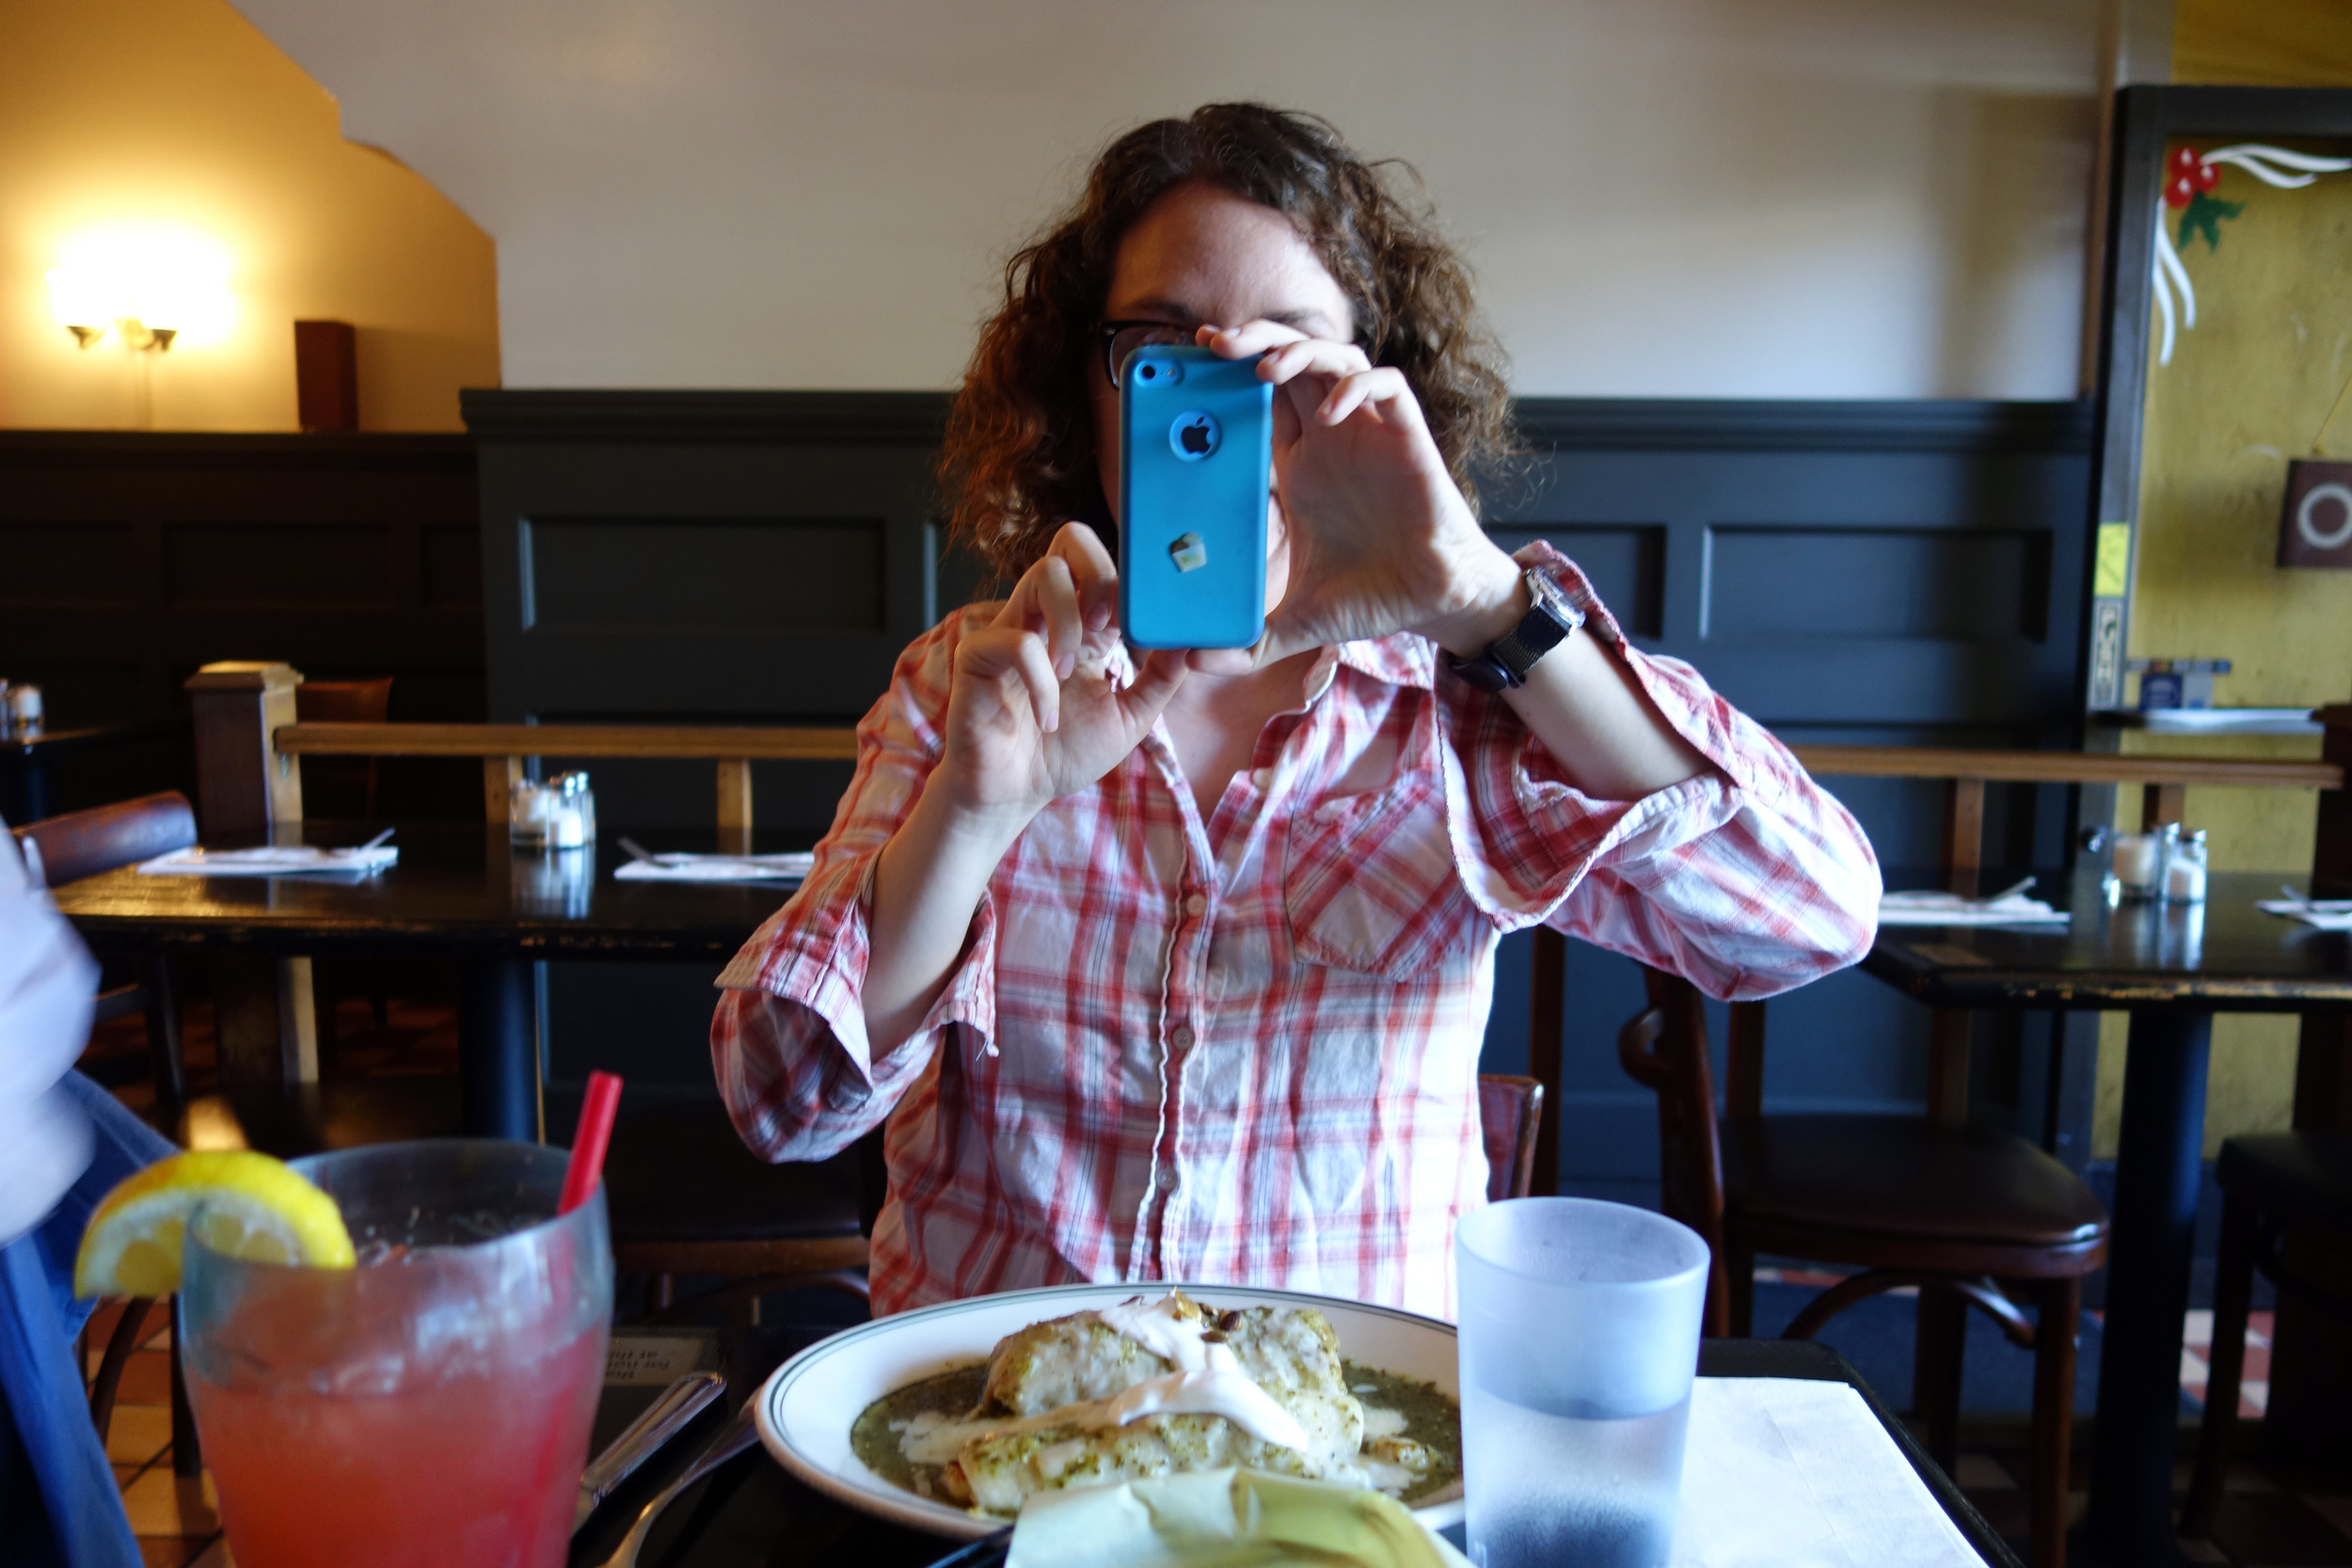 DSC00833 Erica Photographing Her Lunch.JPG